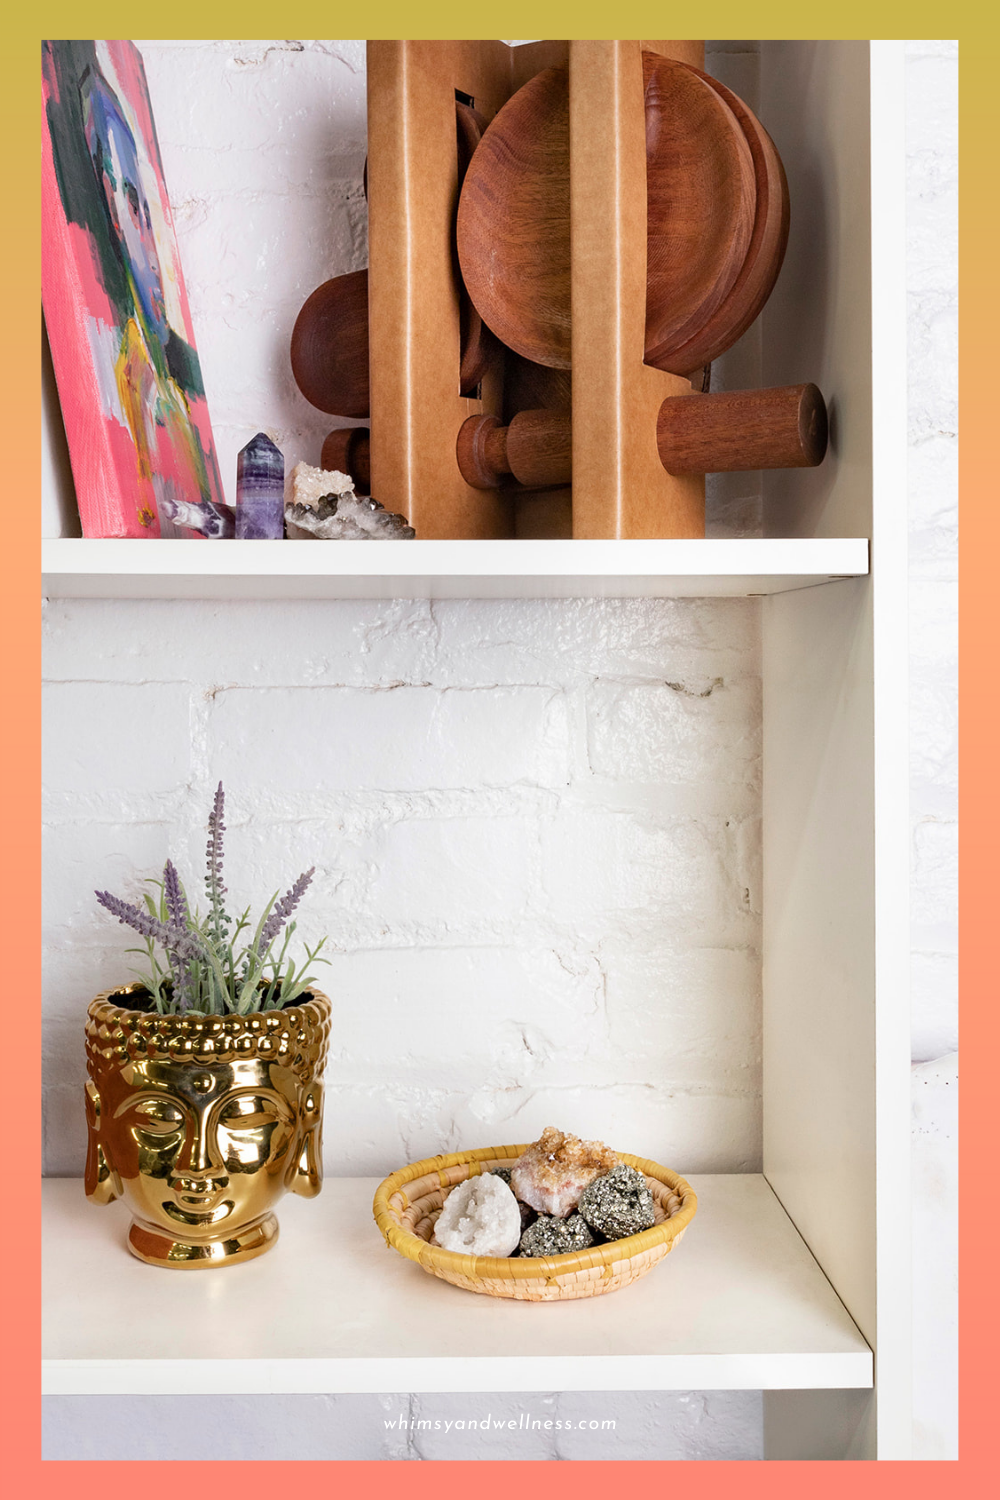 crystals displayed in home on bookshelf with whitewashed brick